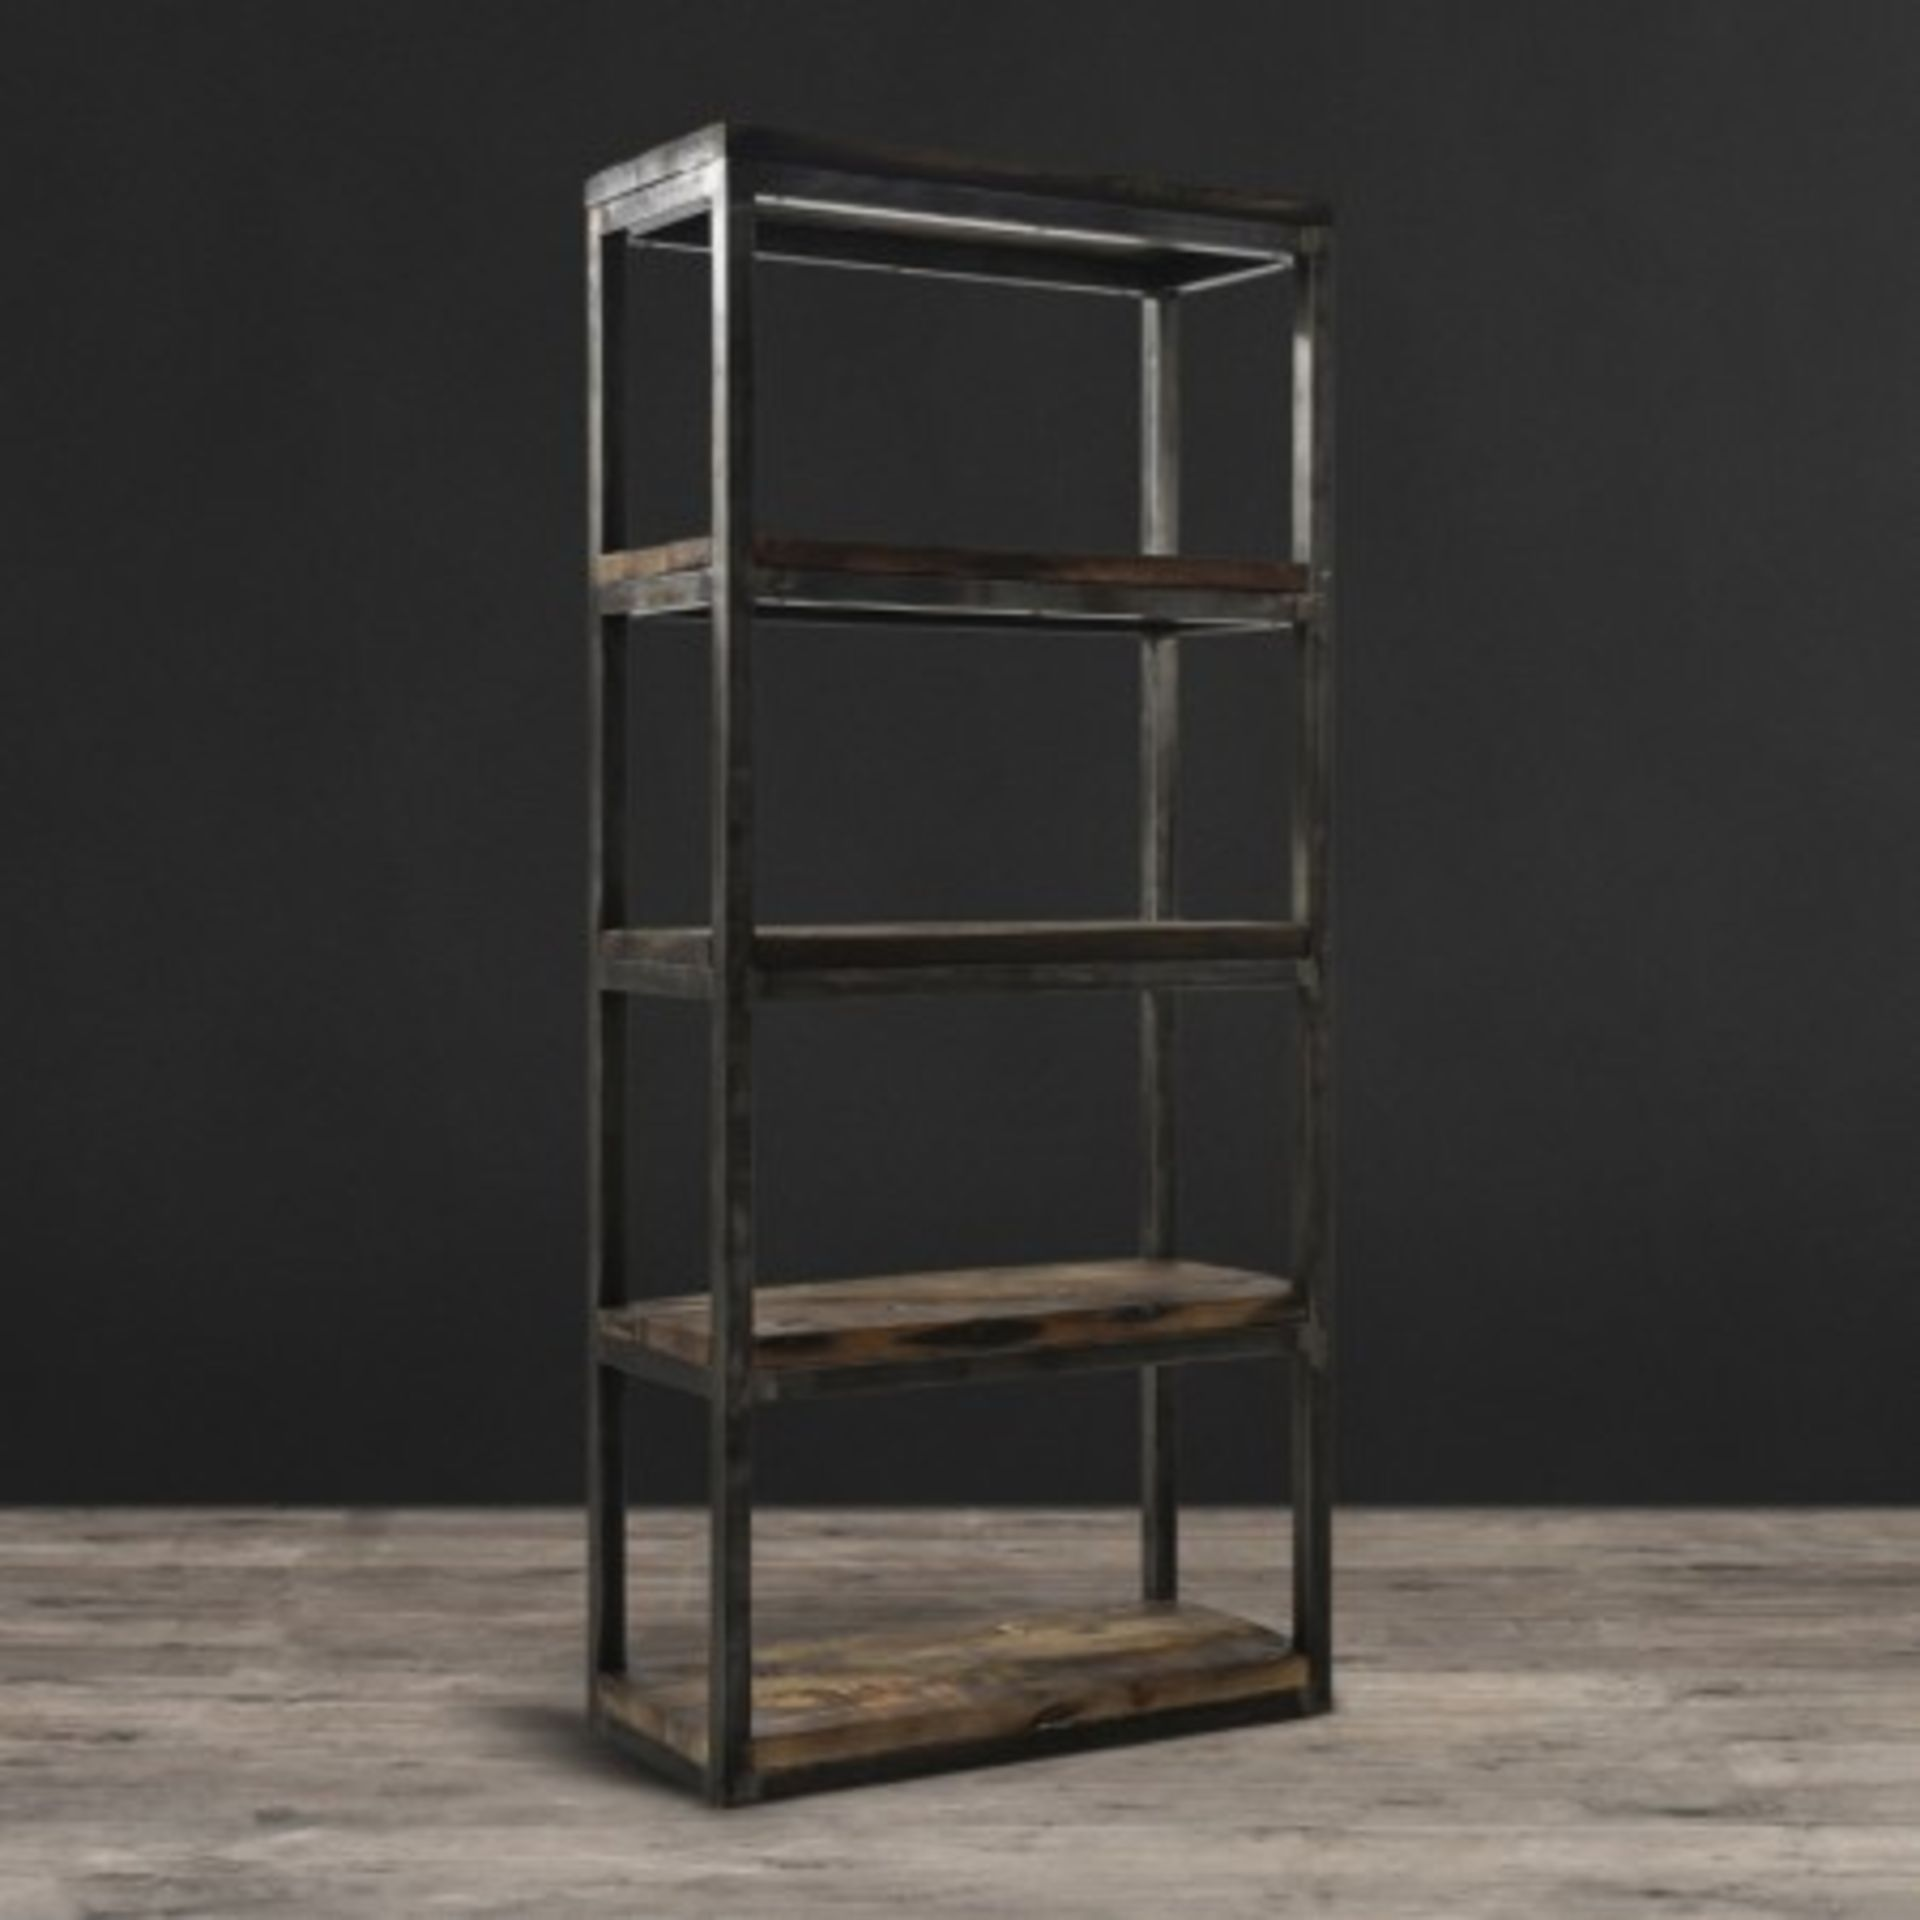 Lot 58 - Axel Mk2 Bookcase Genuine Reclaimed Vintage Boat Wood Natural Combines Old World And Industrial With